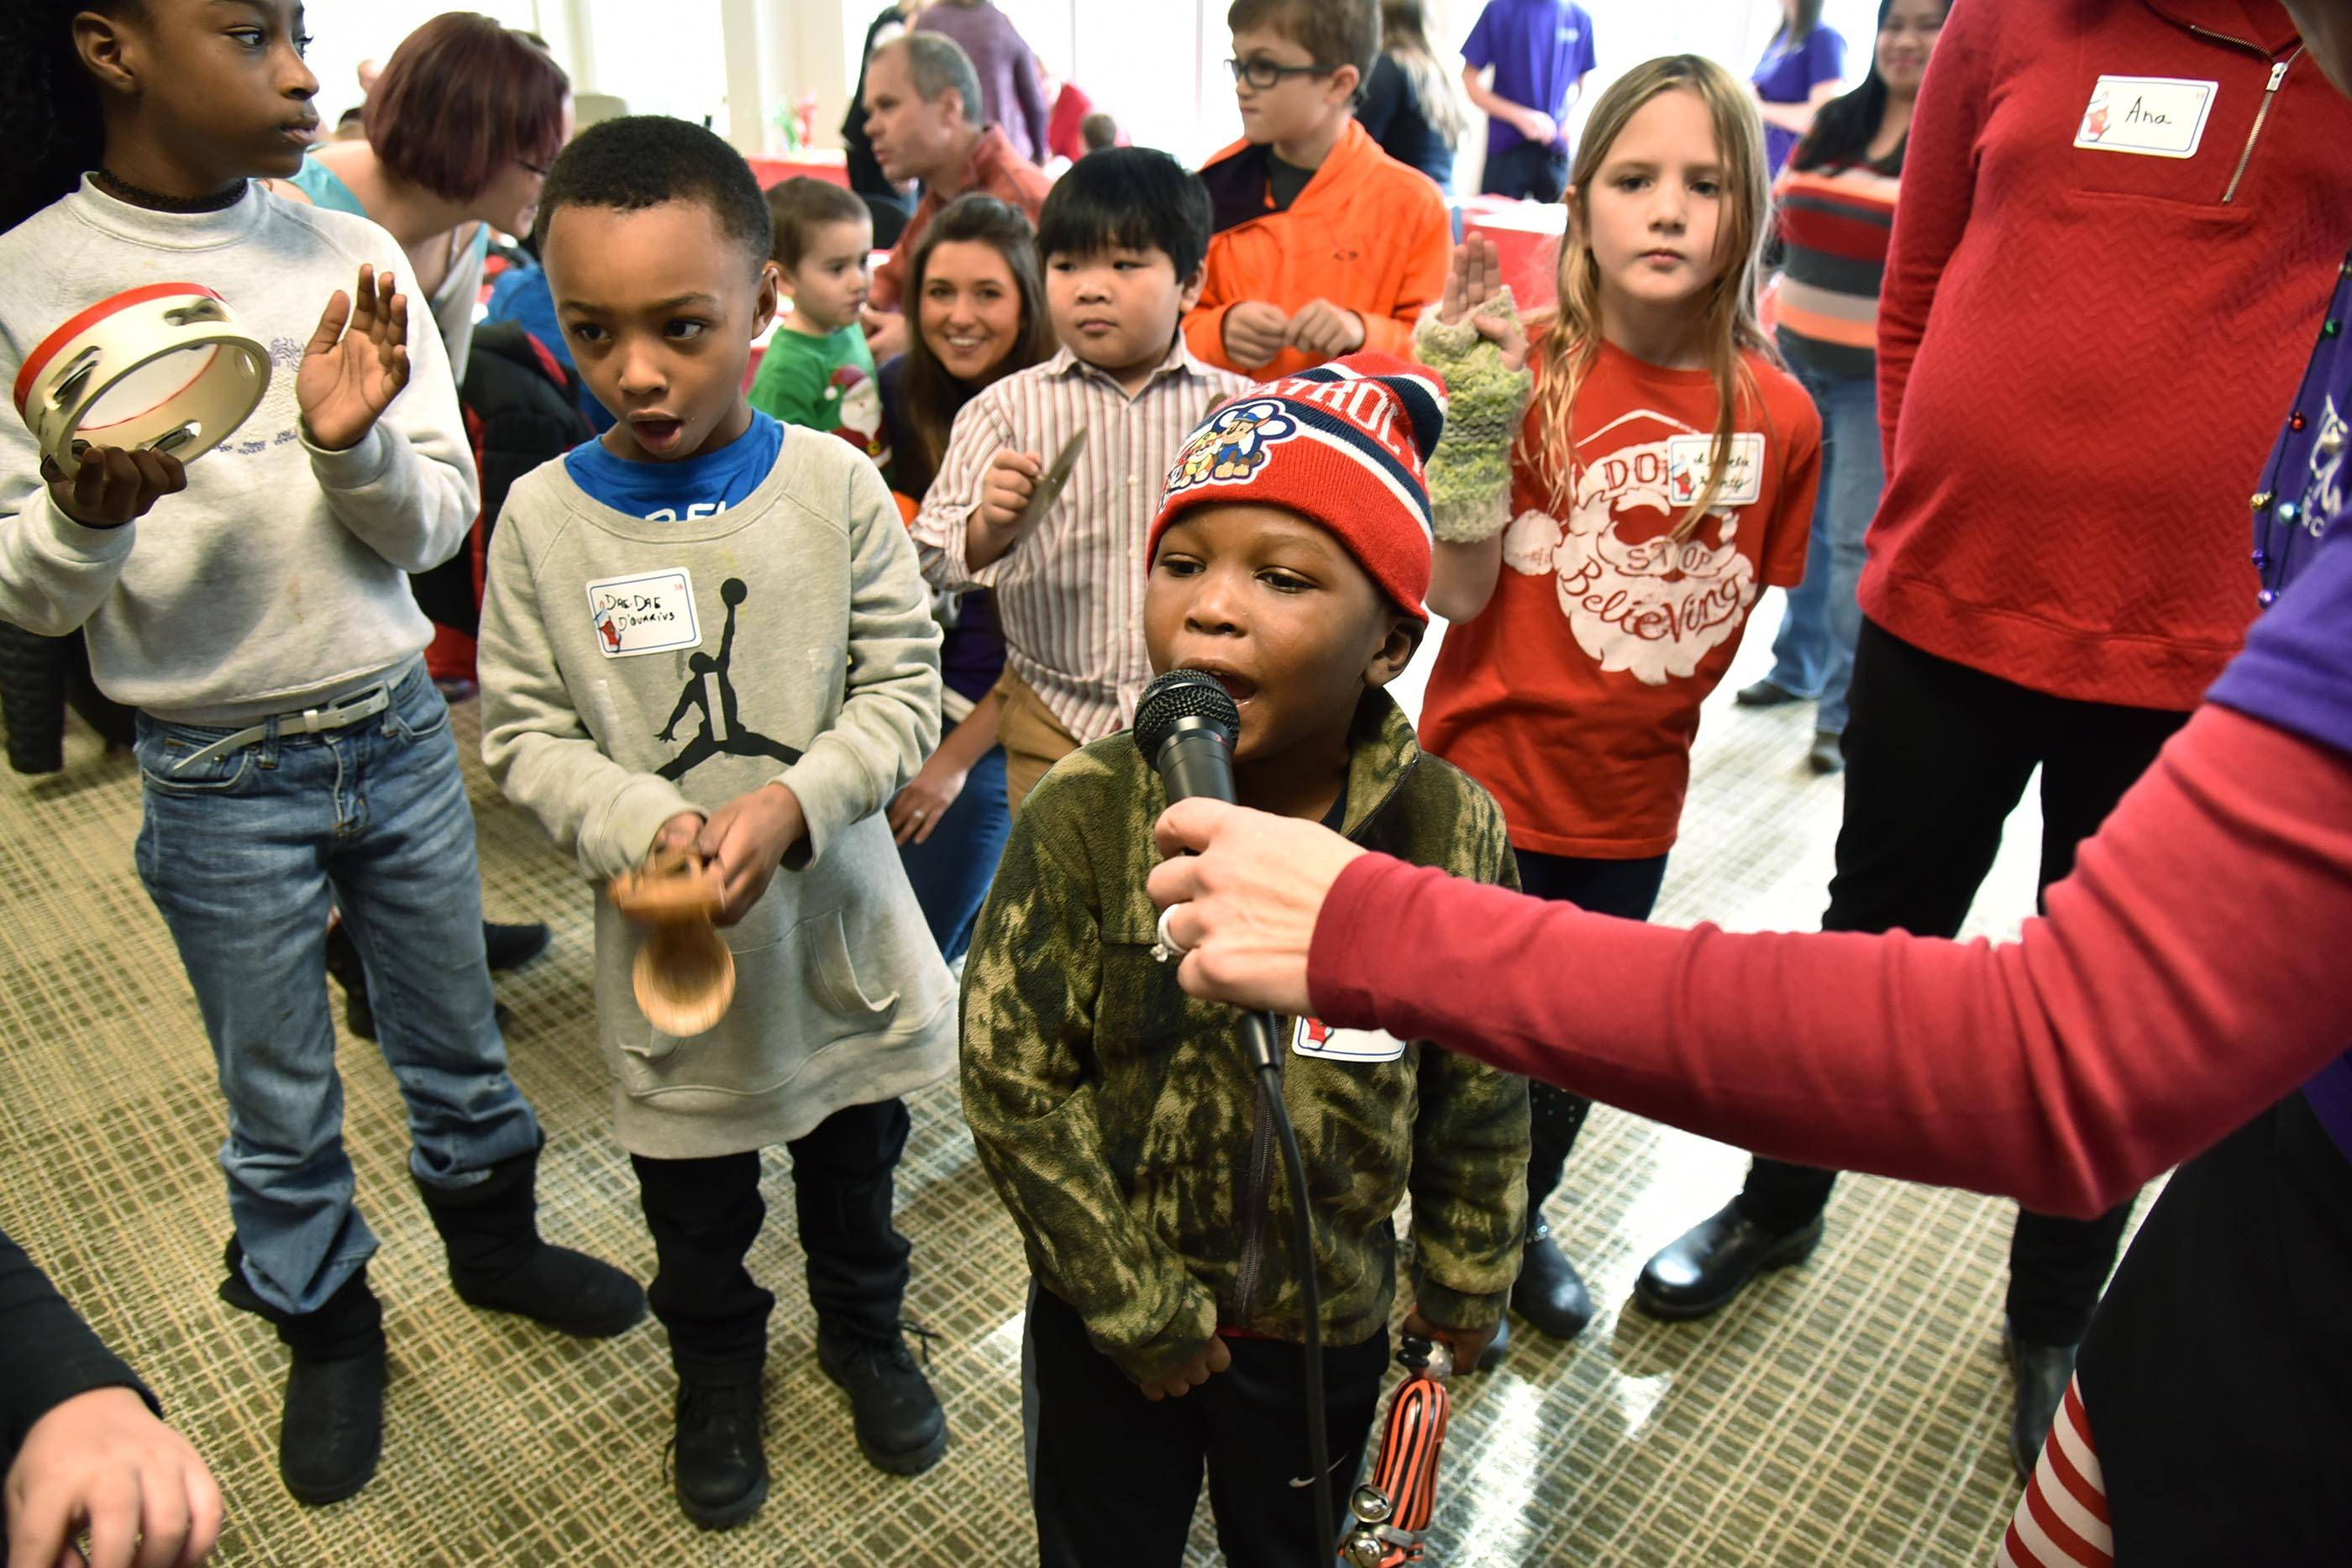 William Lackland, 5, of Elgin sings Christmas carols into a microphone held by speech therapist Rima Birutis as 176 children gather to visit with Santa Saturday at the Marianjoy Rehabilitation Hospital in Wheaton. William had brain surgery earlier in 2017 and had to relearn how to walk and talk, but now he loves to sing.